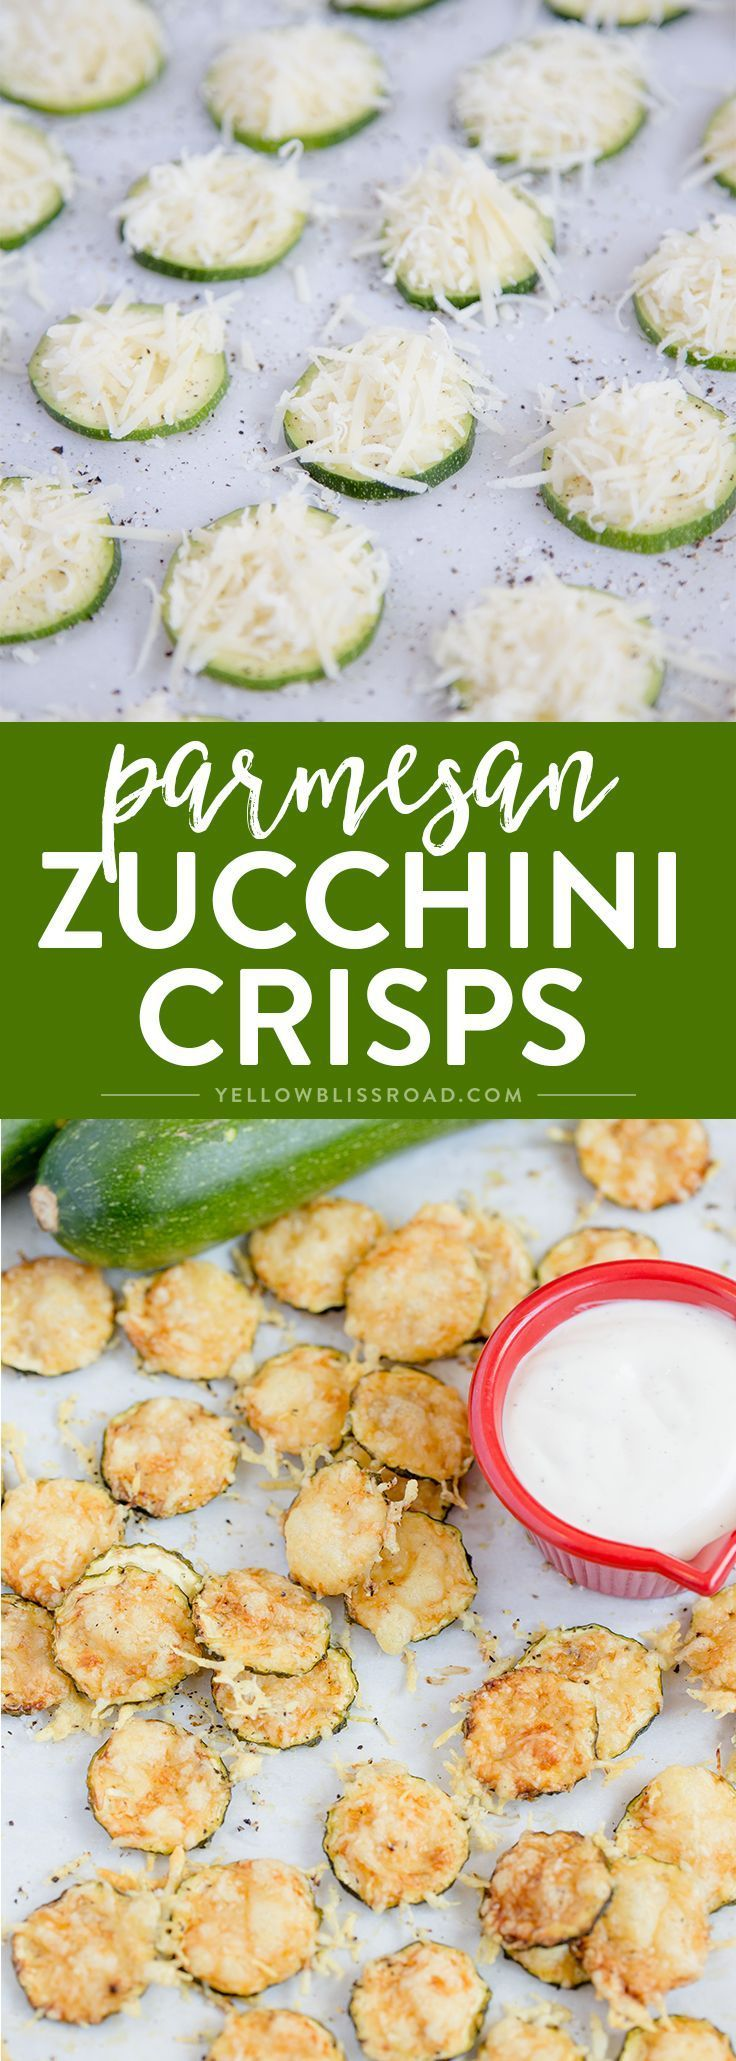 Photo of Baked Parmesan Zucchini Chips | YellowBlissRoad.com